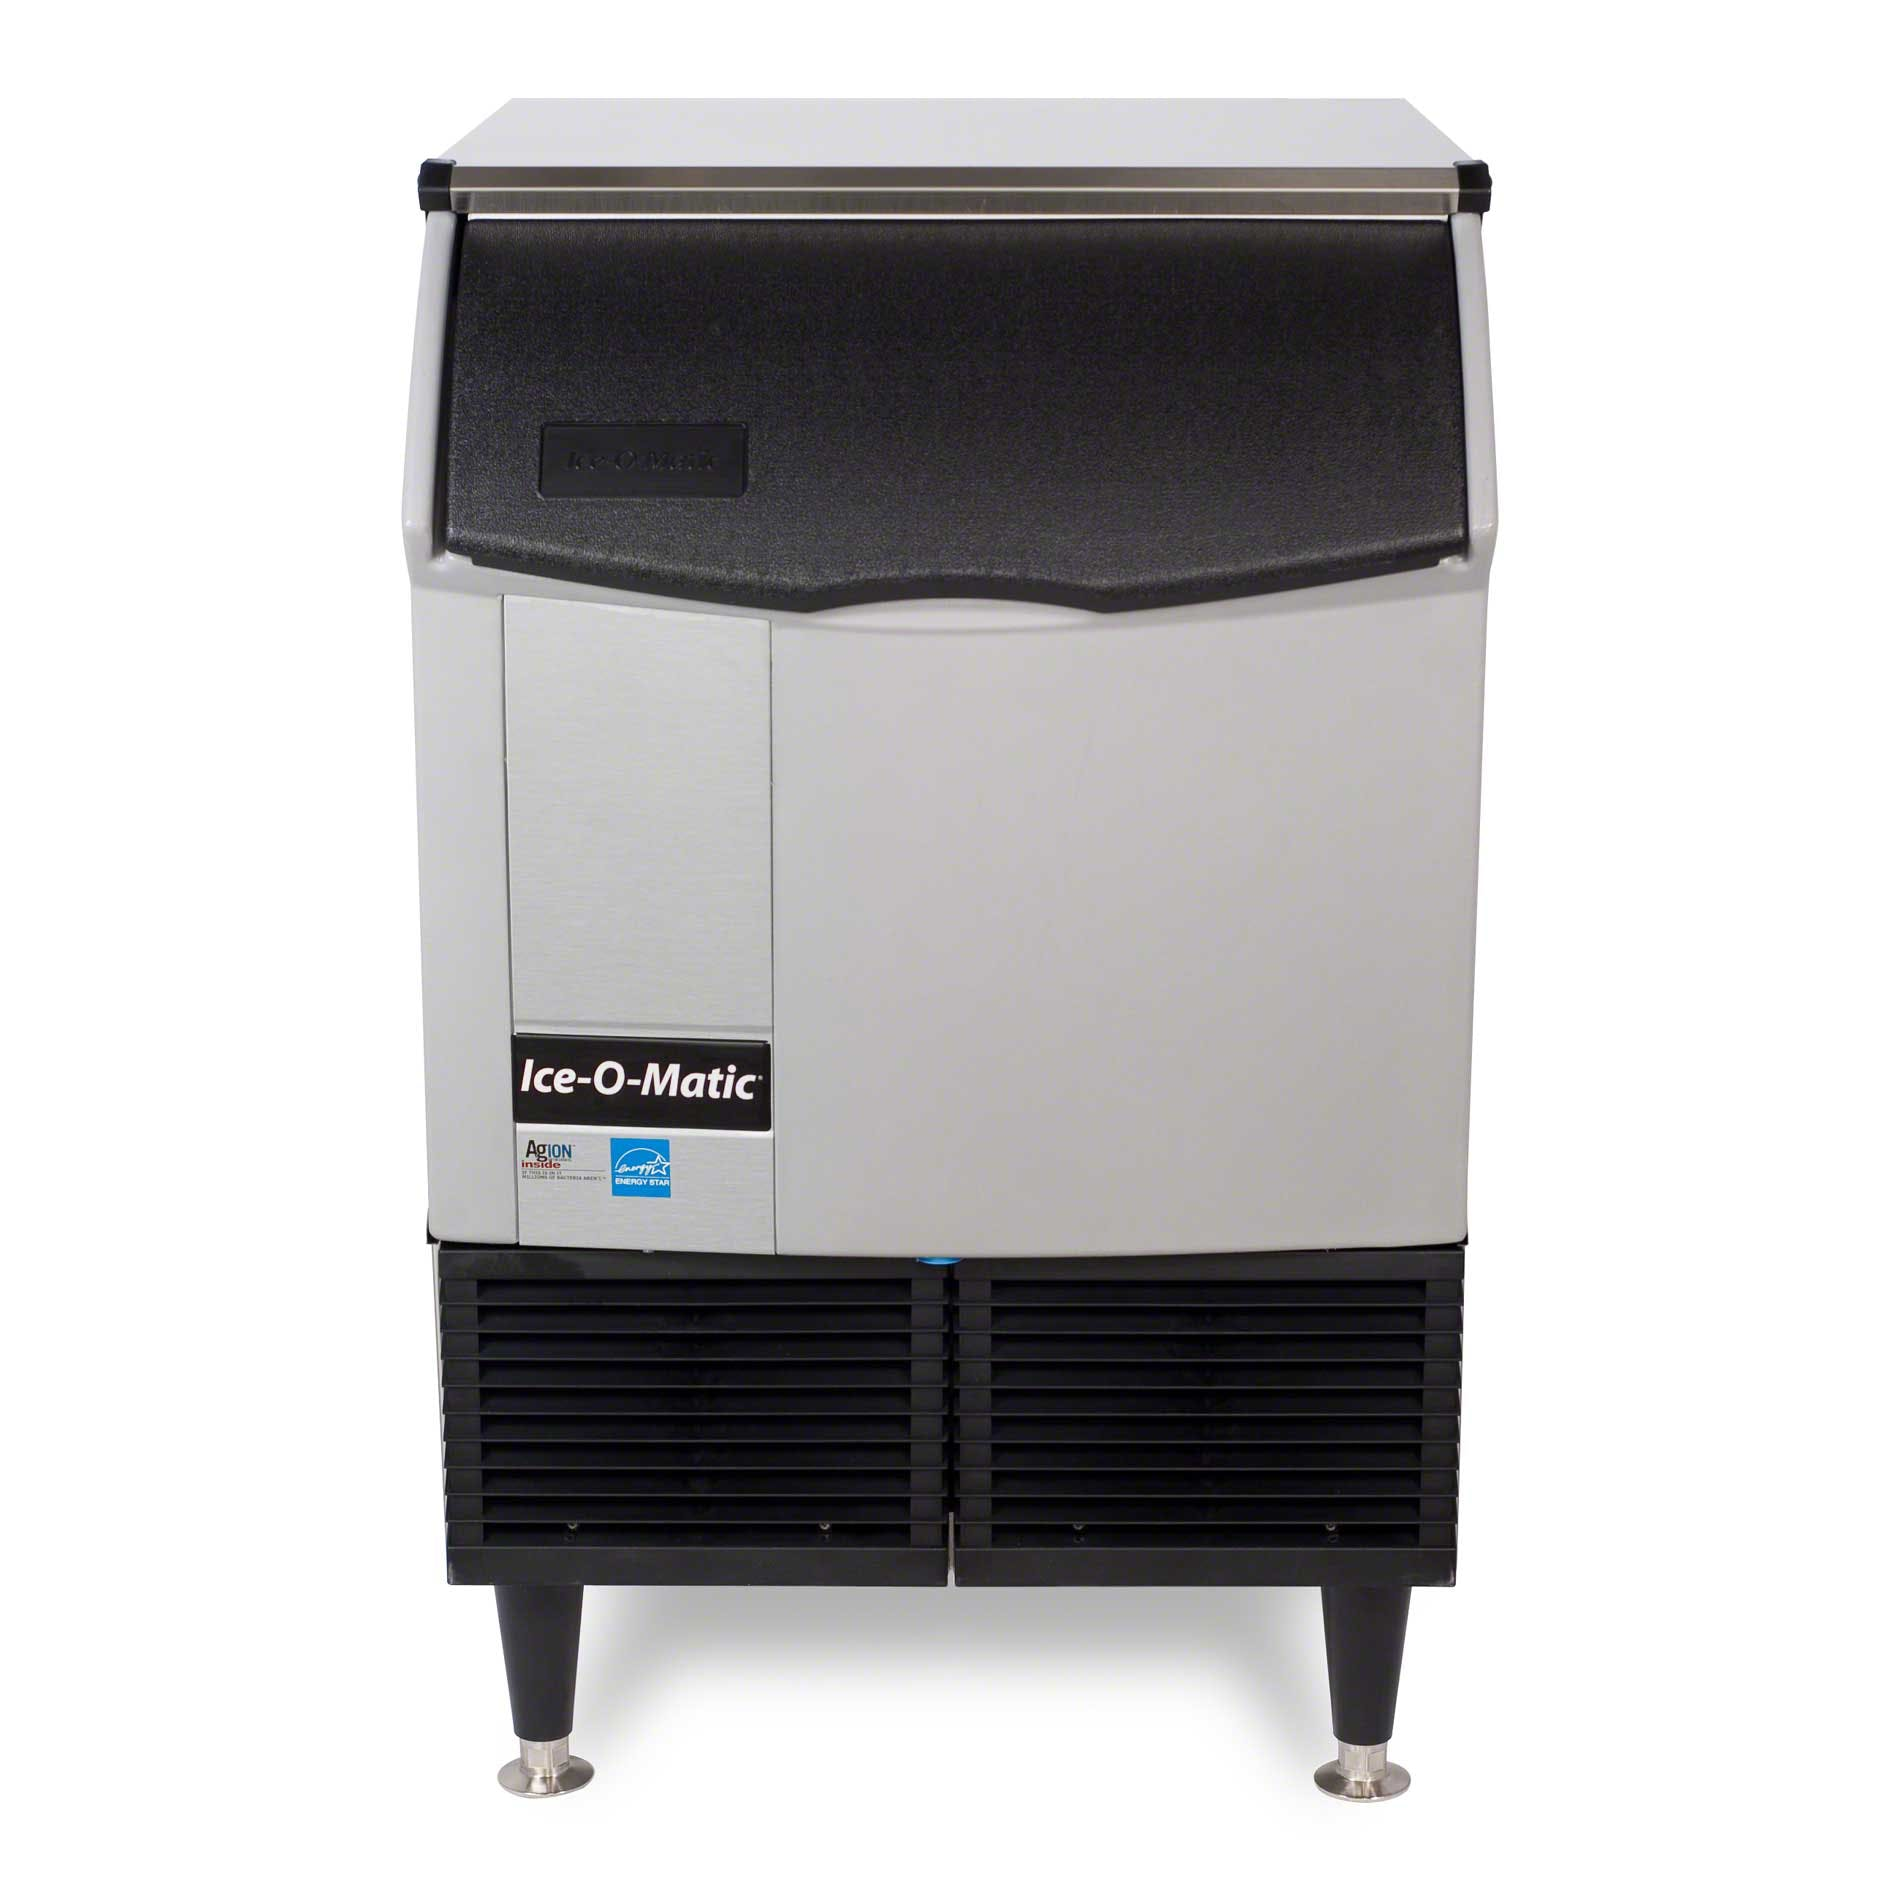 Ice-O-Matic - ICEU226HW 232 lb Self-Contained Half Cube Ice Machine Ice machine sold by Food Service Warehouse